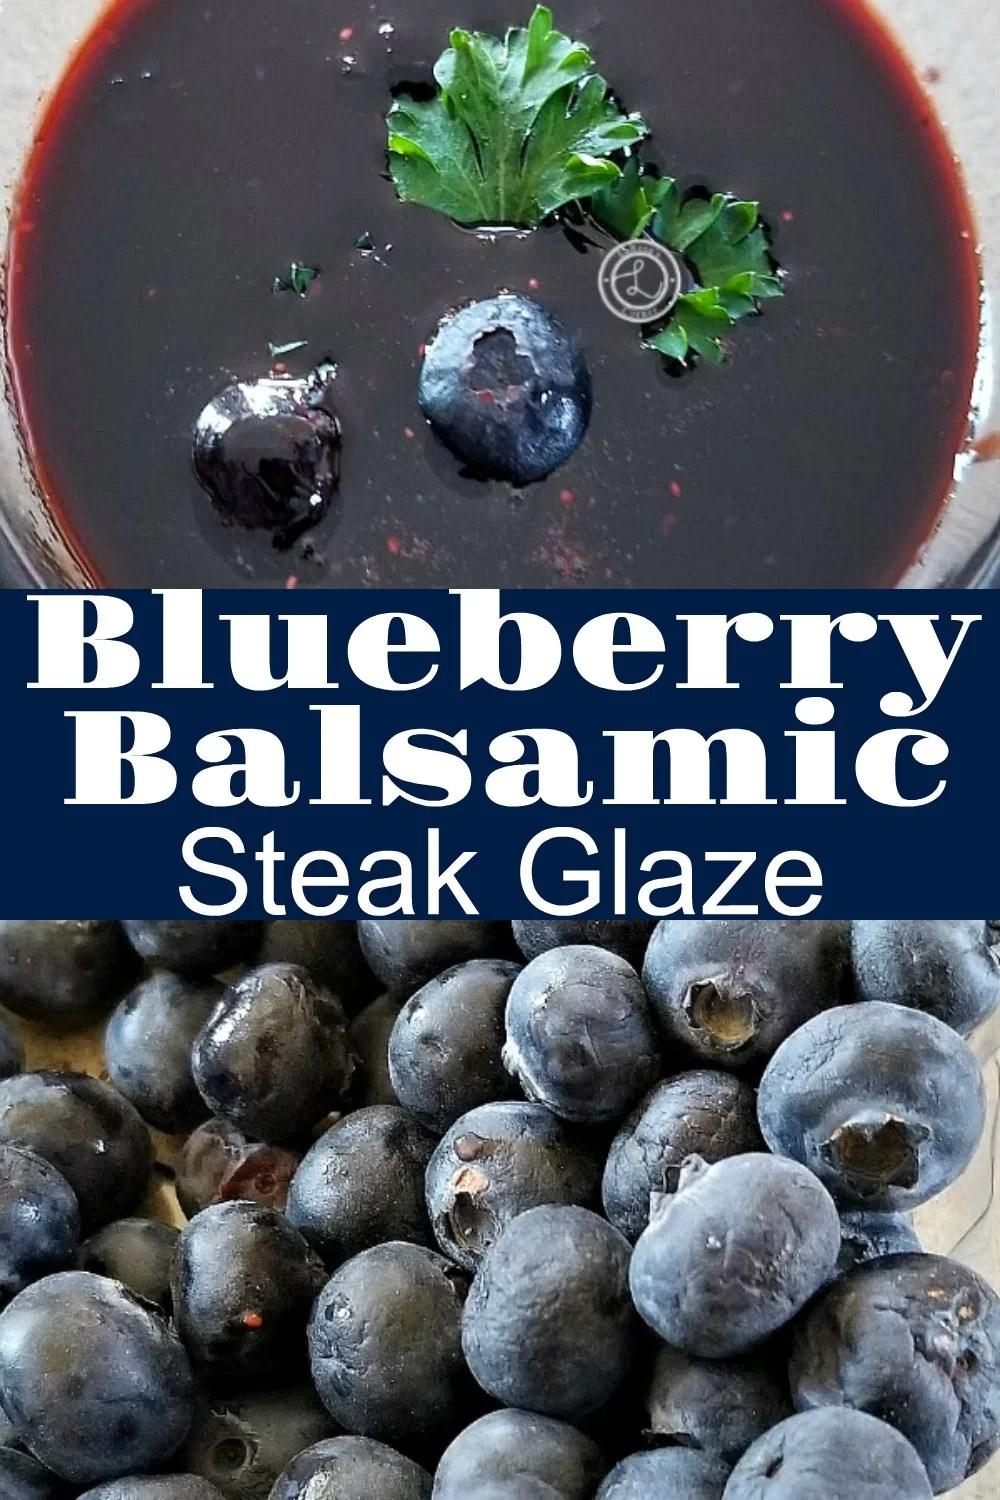 Two pictures. One of blueberries and one of the glaze decorated with a piece of parsley and two blueberries